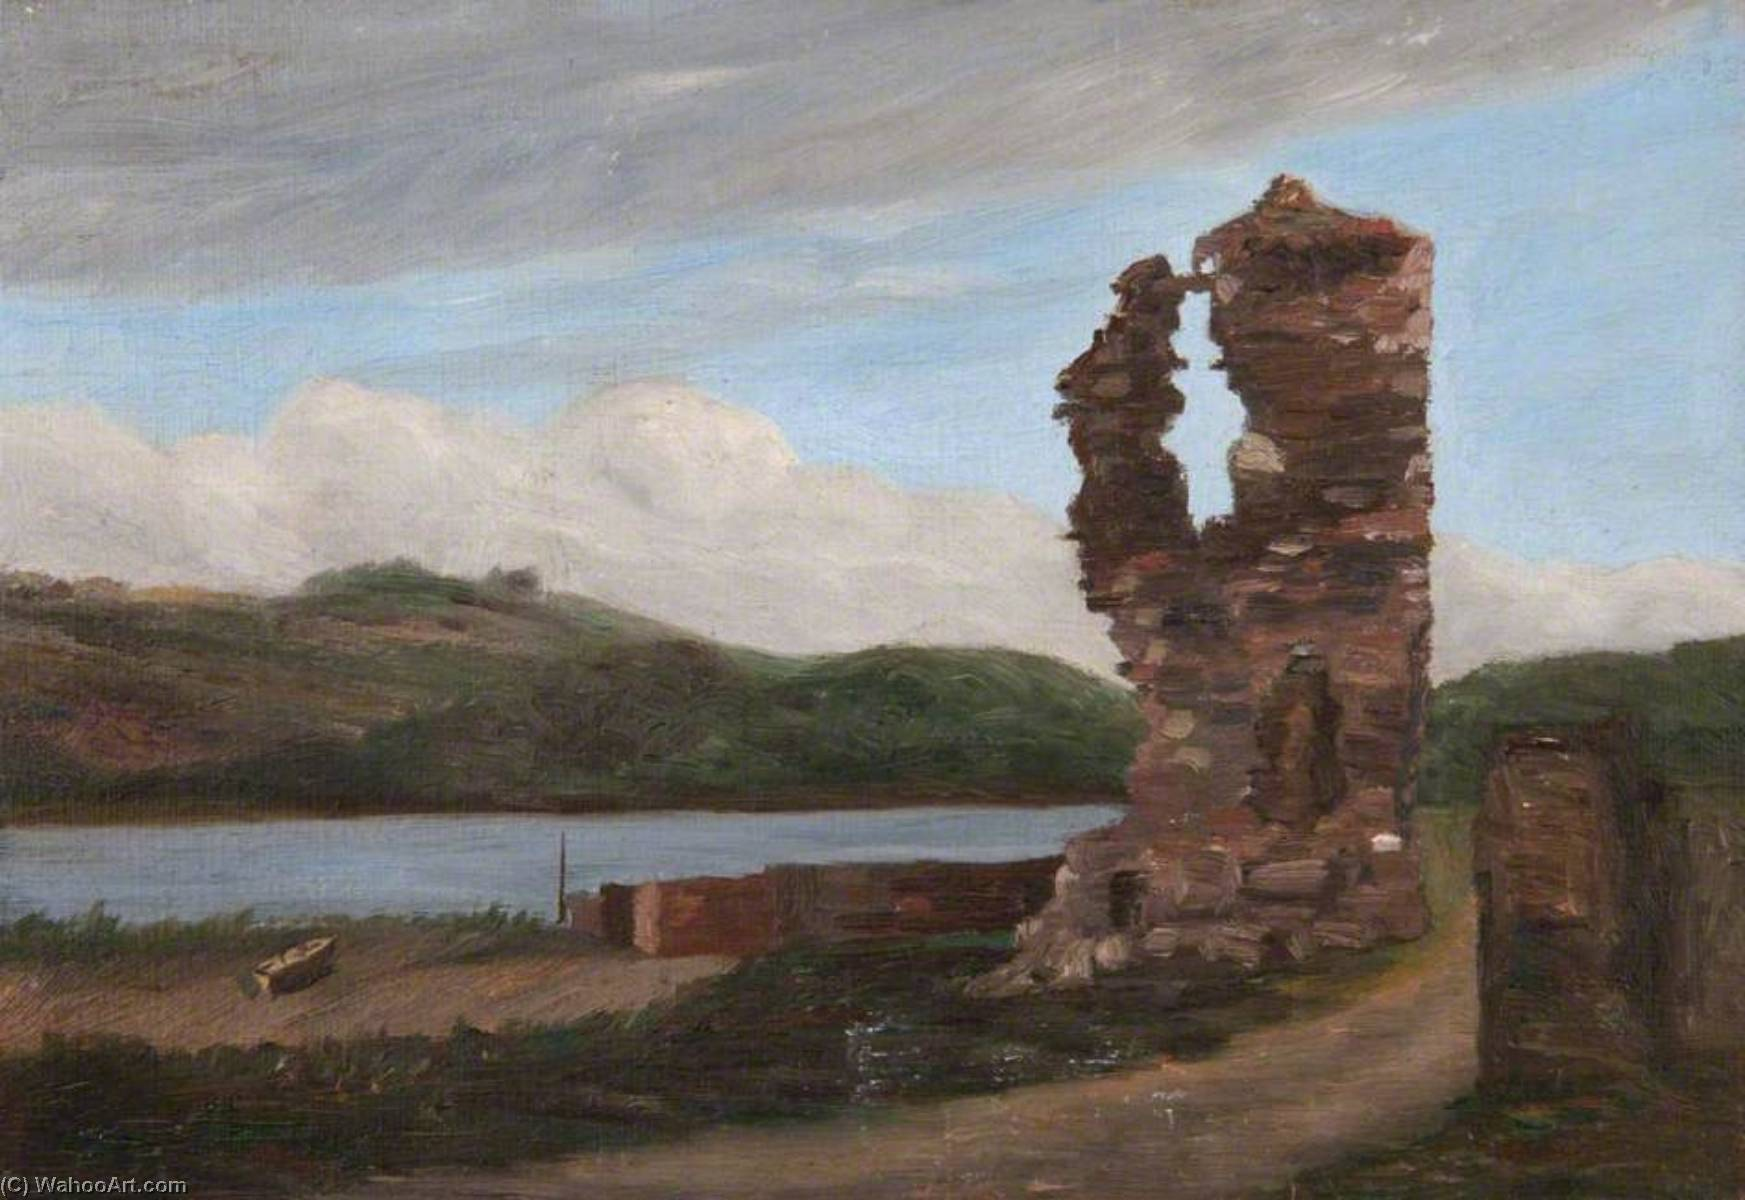 Order Painting Copy : Landscape with Ruins by Robert Lillie | ArtsDot.com